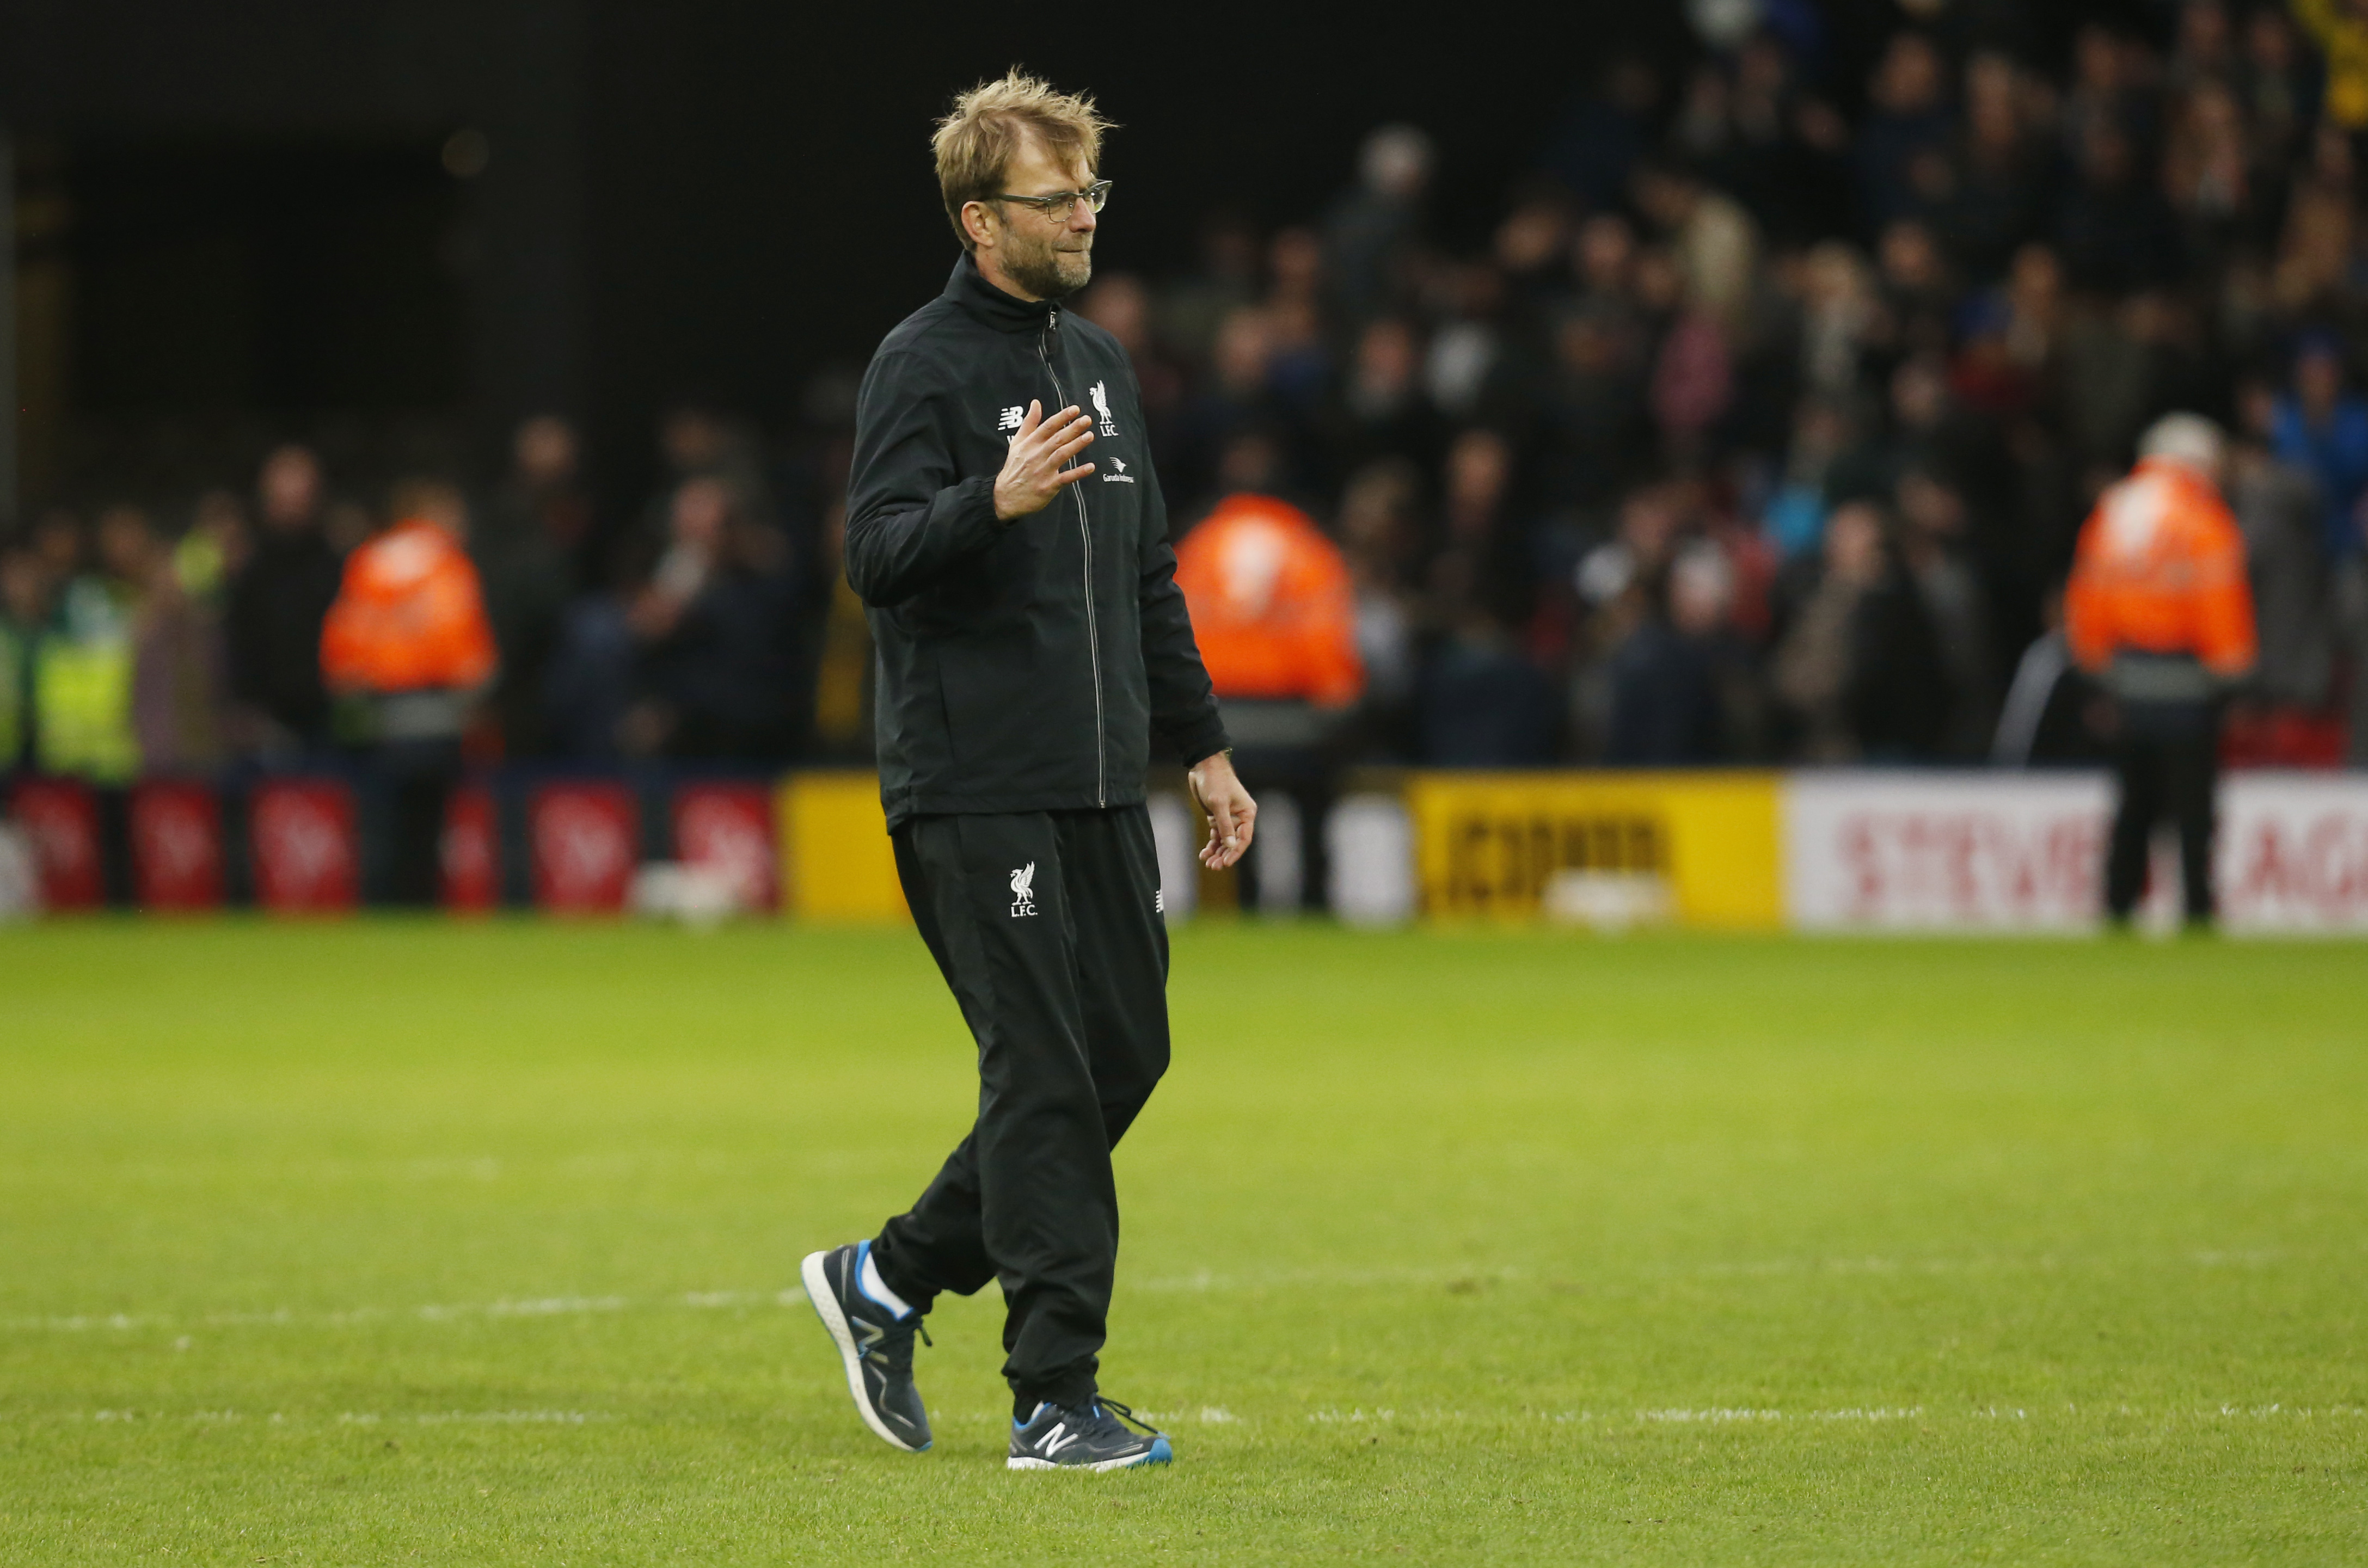 Liverpool manager Juergen Klopp at the end of the game against Wartford at Vicarage Road in December 20, 2015. Photo: Reuters